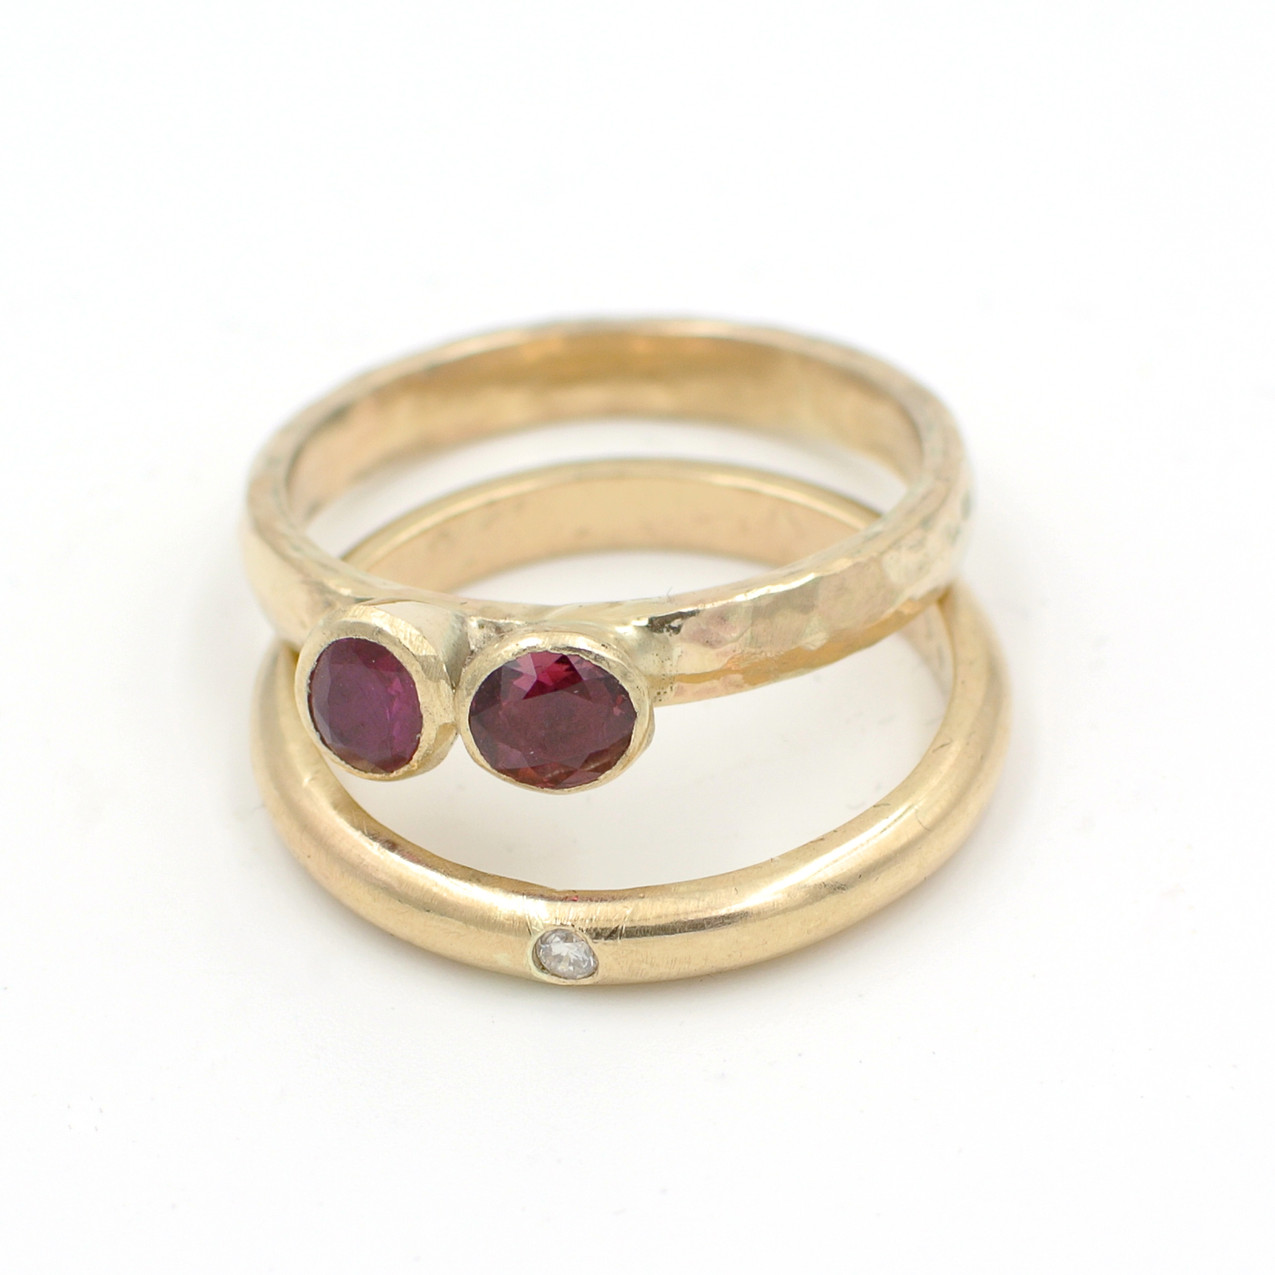 Remodelling old gold with original ruby and diamond stones into a contemporary style gold ring.